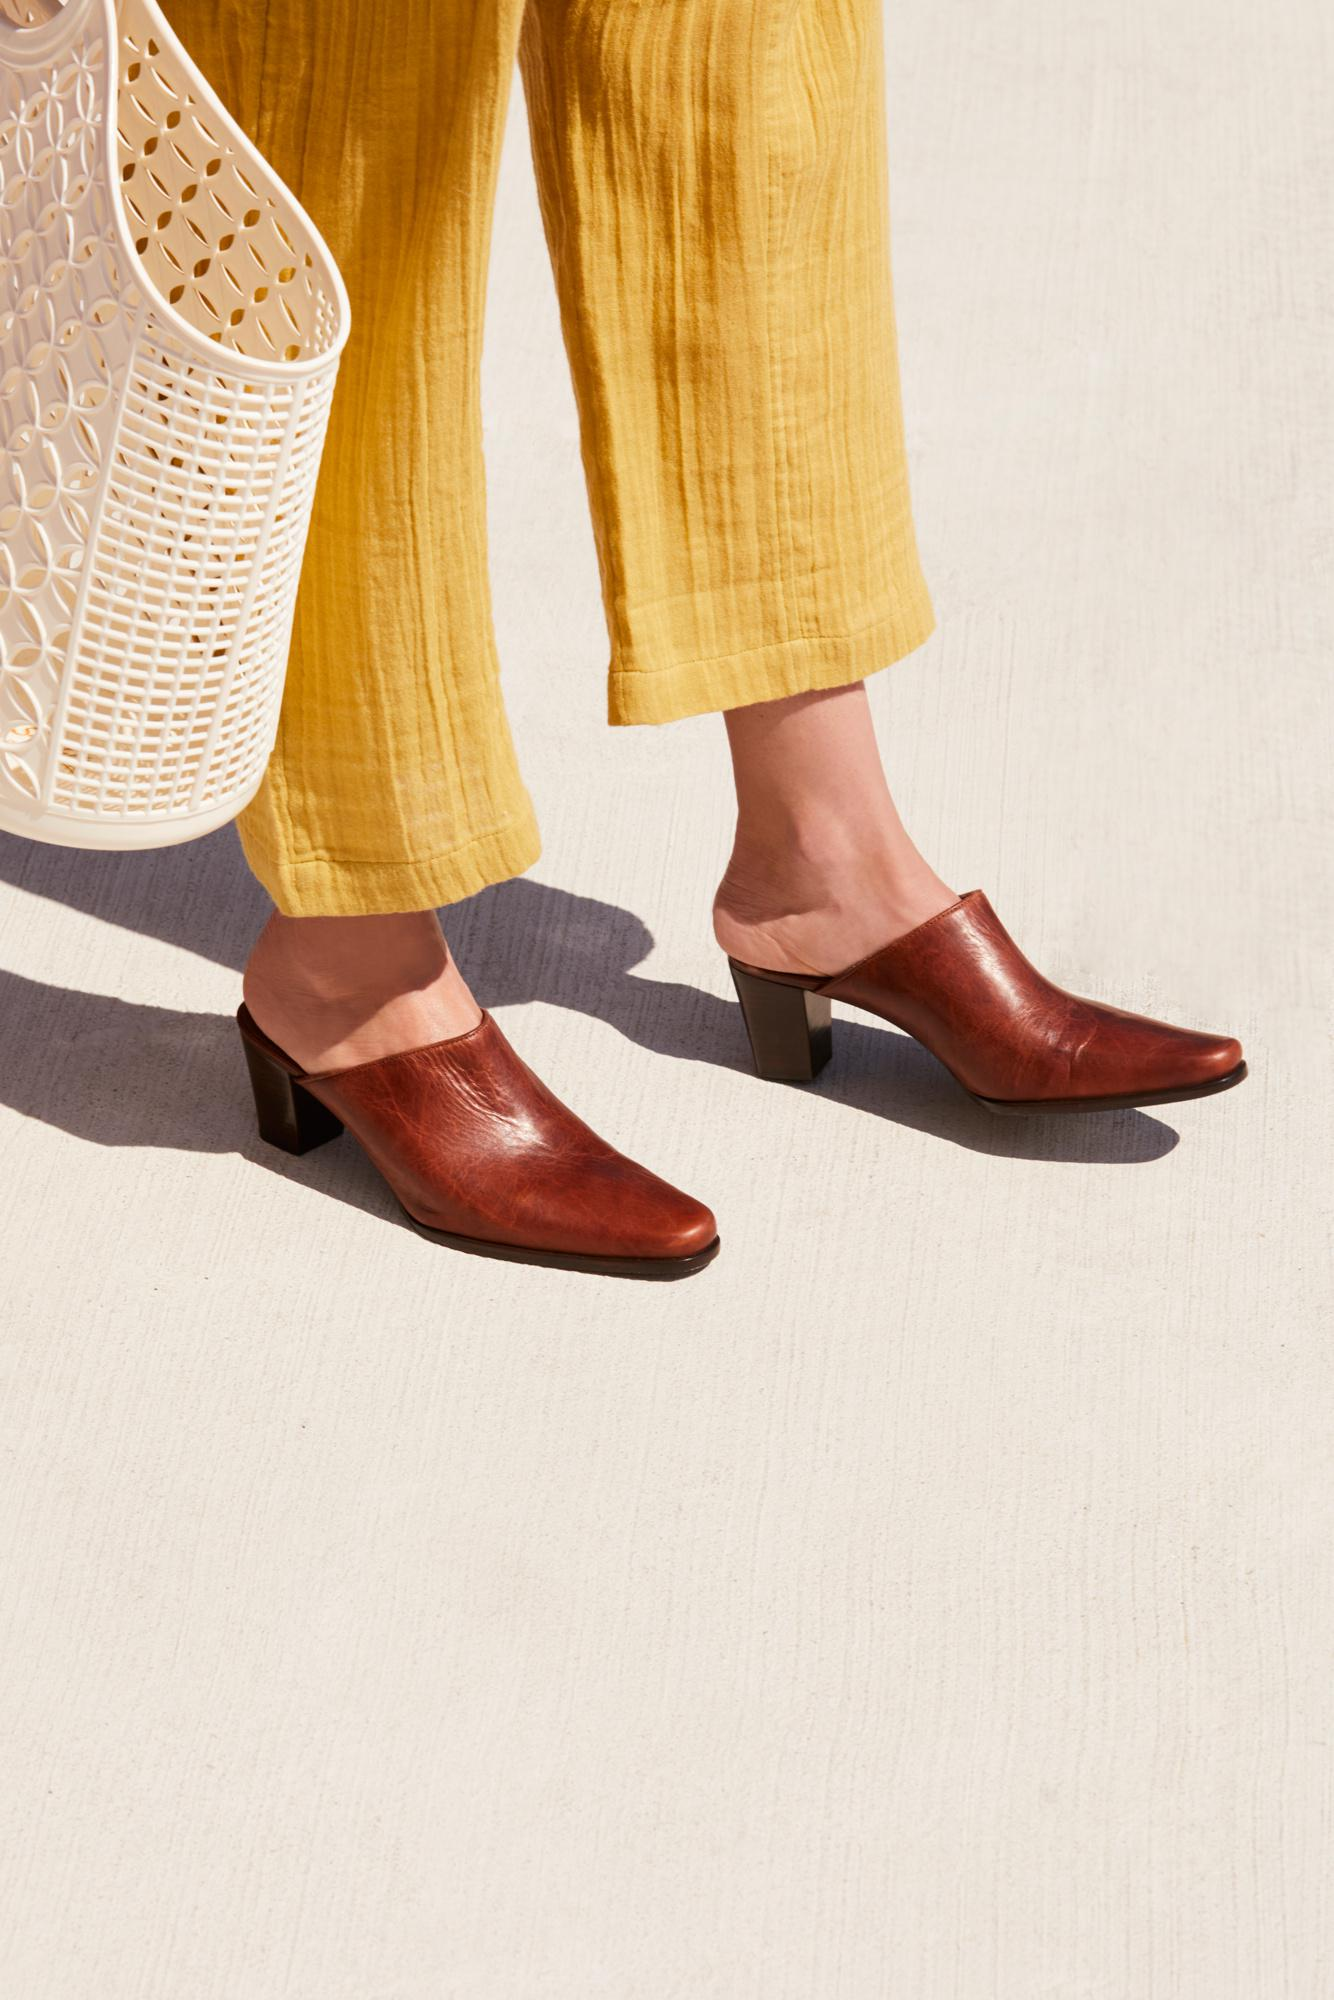 a70c203733ac5 Free People Gallery Mule By Coconuts By Matisse in Brown - Lyst